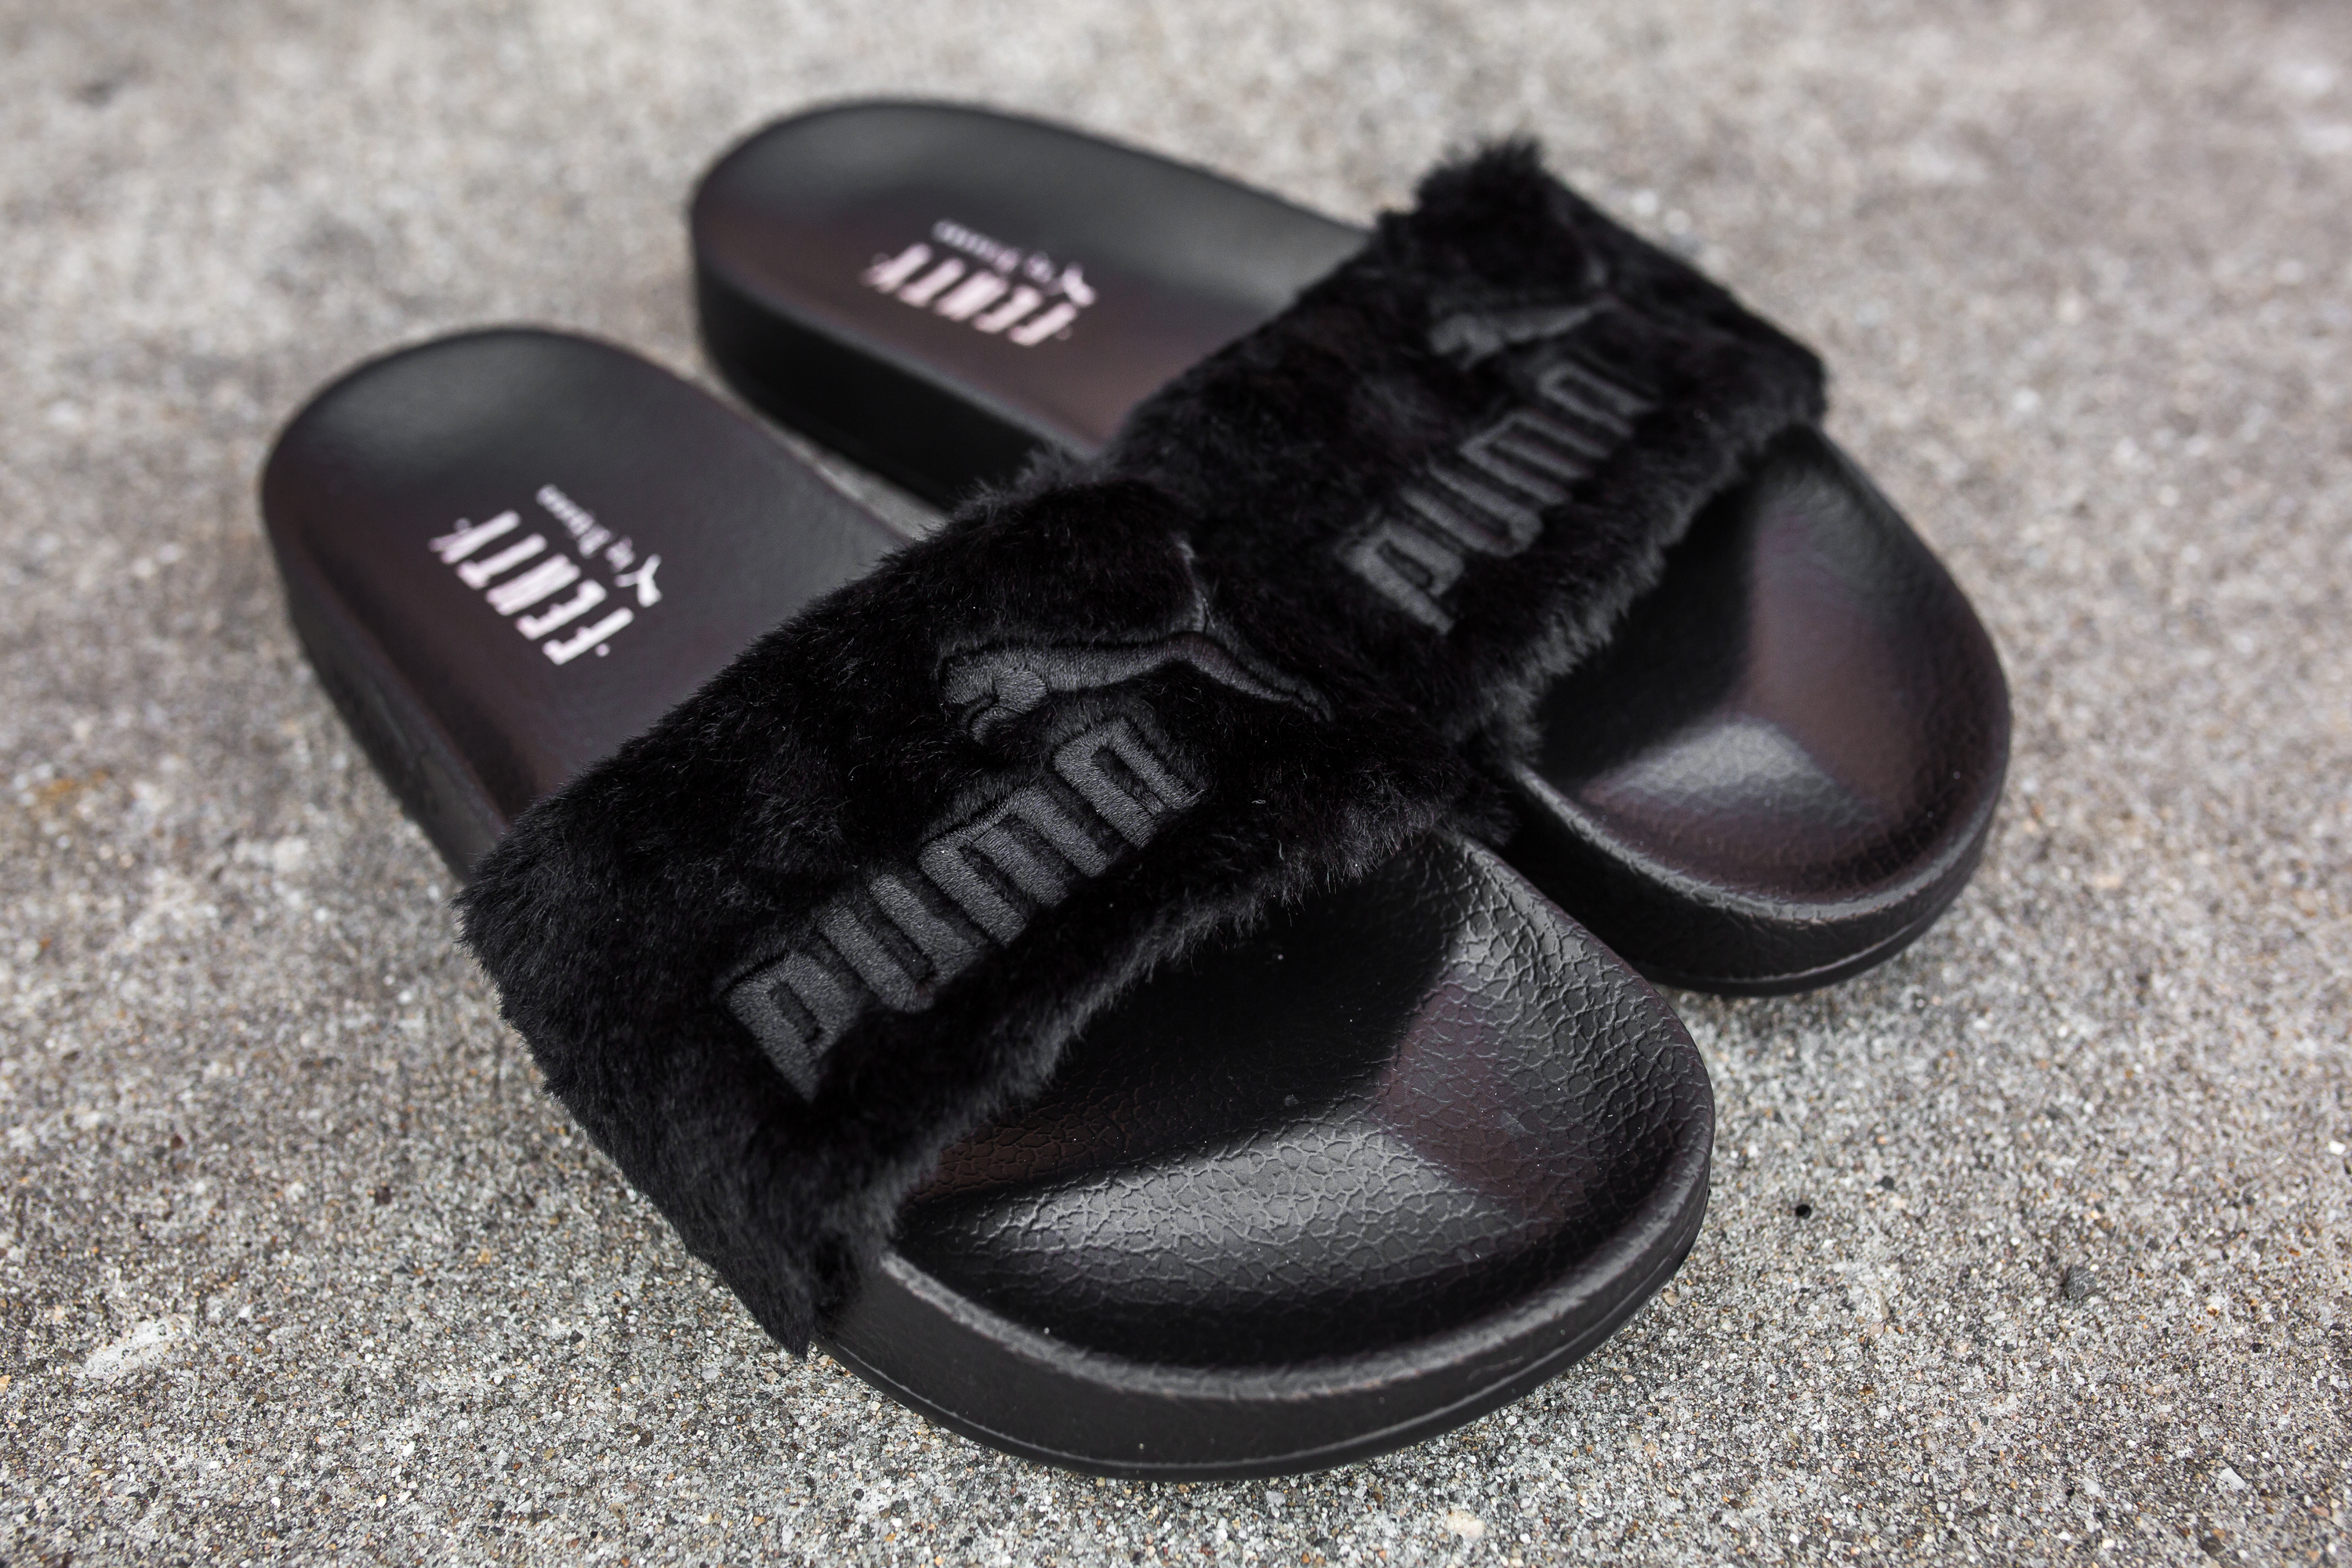 Rihanna x Puma Leadcat Fenty Fur Slides – PACKER SHOES